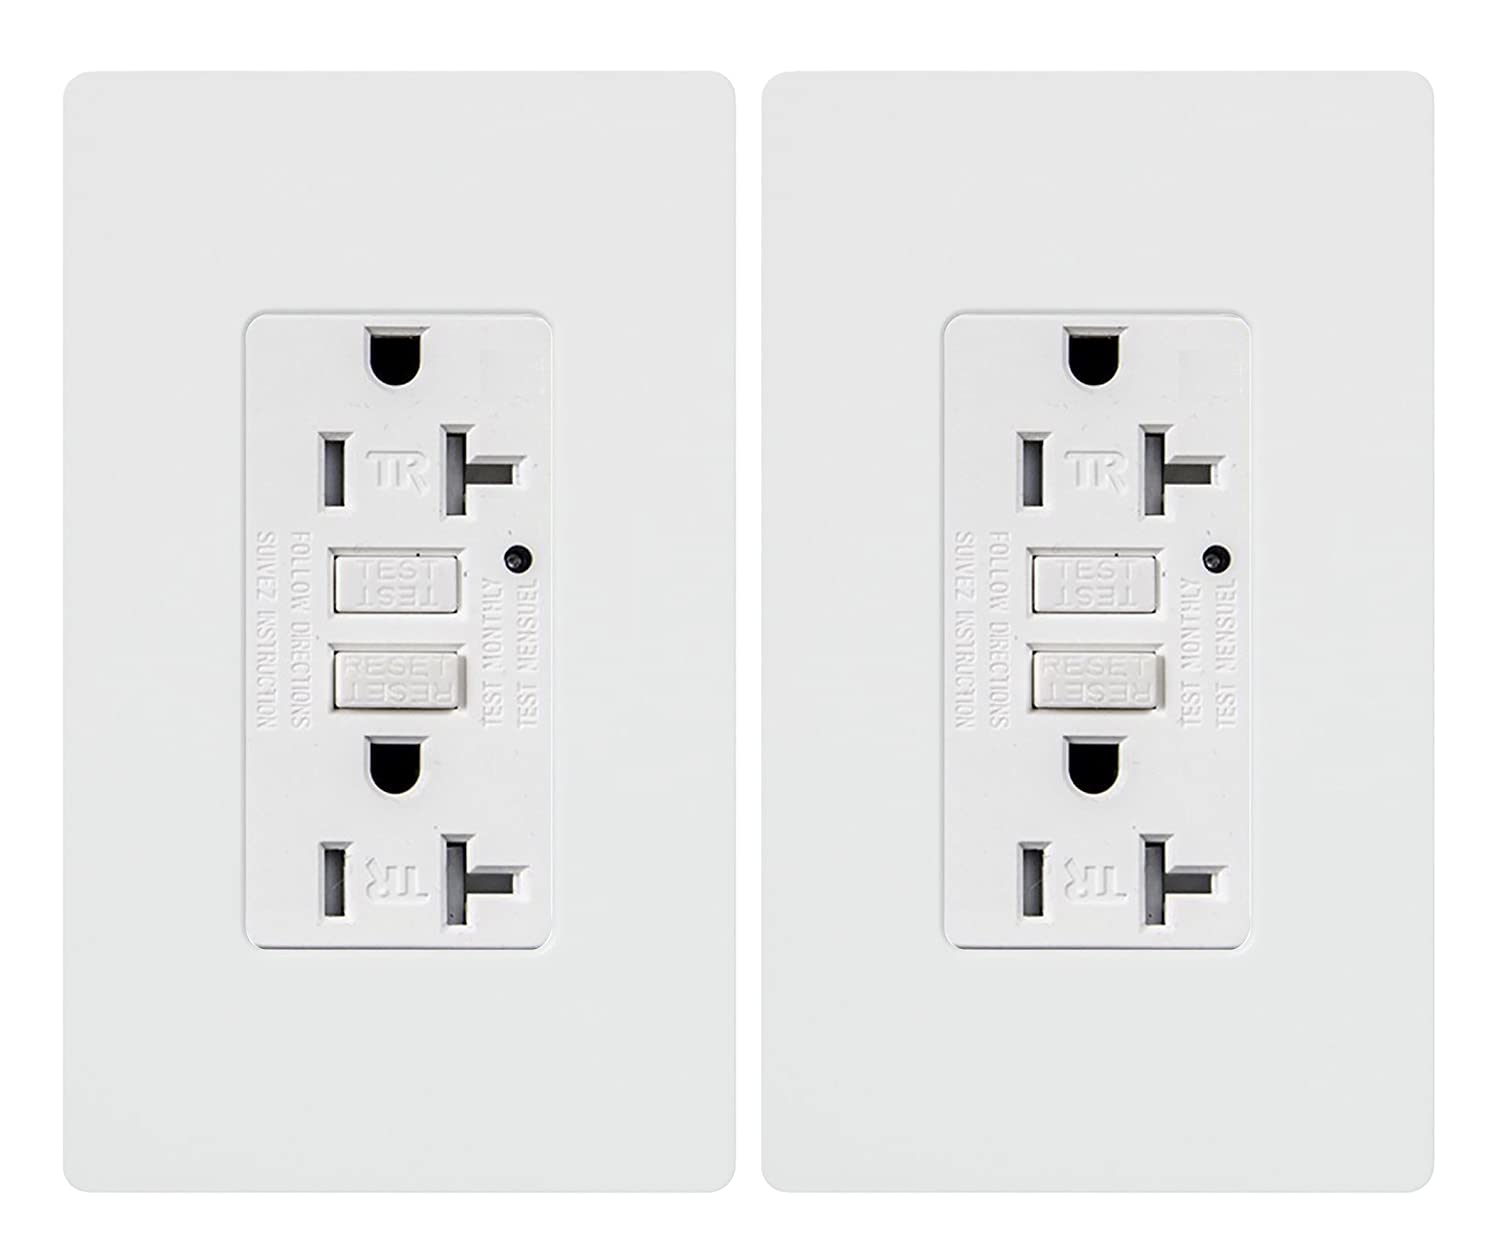 Gfci Outlet 20 Amp Tamper Resistant Receptacle With Led Indicator 15 Circuit Guard White Hd 125 Volt Wallplate And Screws Included Etl Listed Micmi M70 20a 2pack